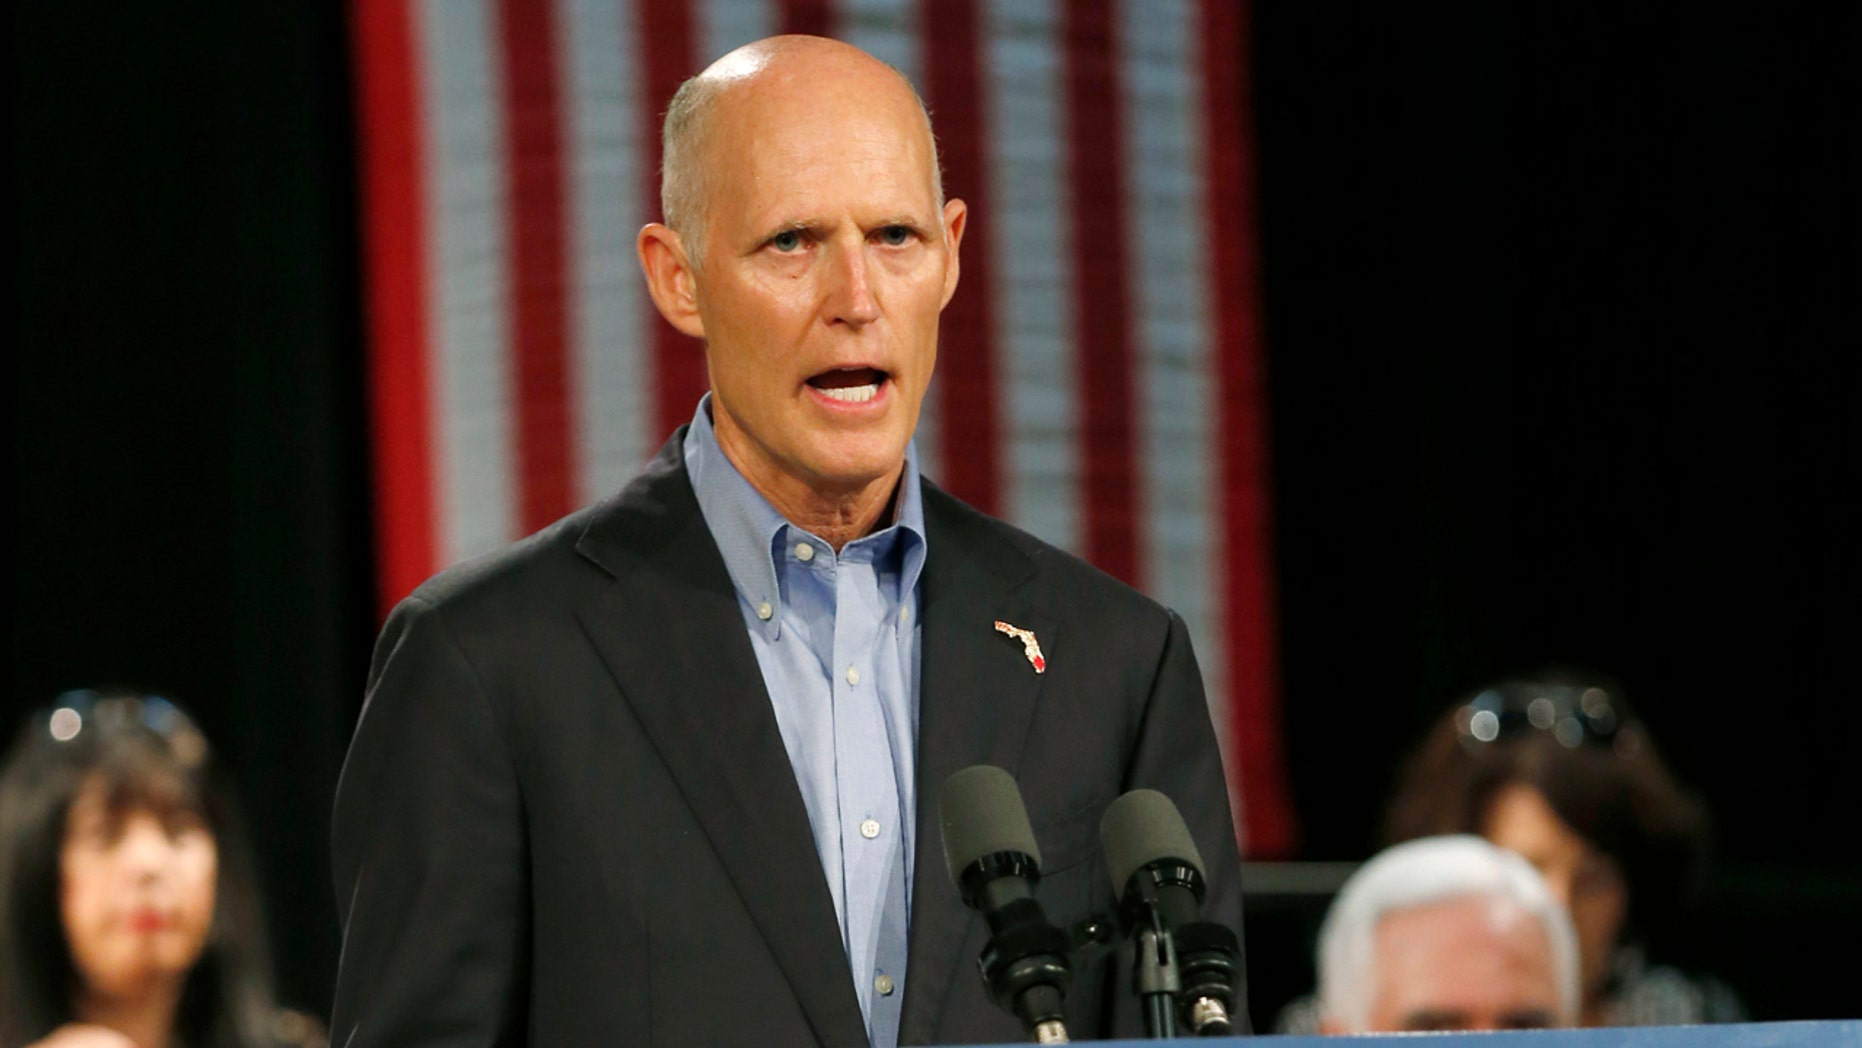 Florida Gov. Rick Scott, speaks at a campaign stop, in Hialeah, Fla., July 13, 2018.